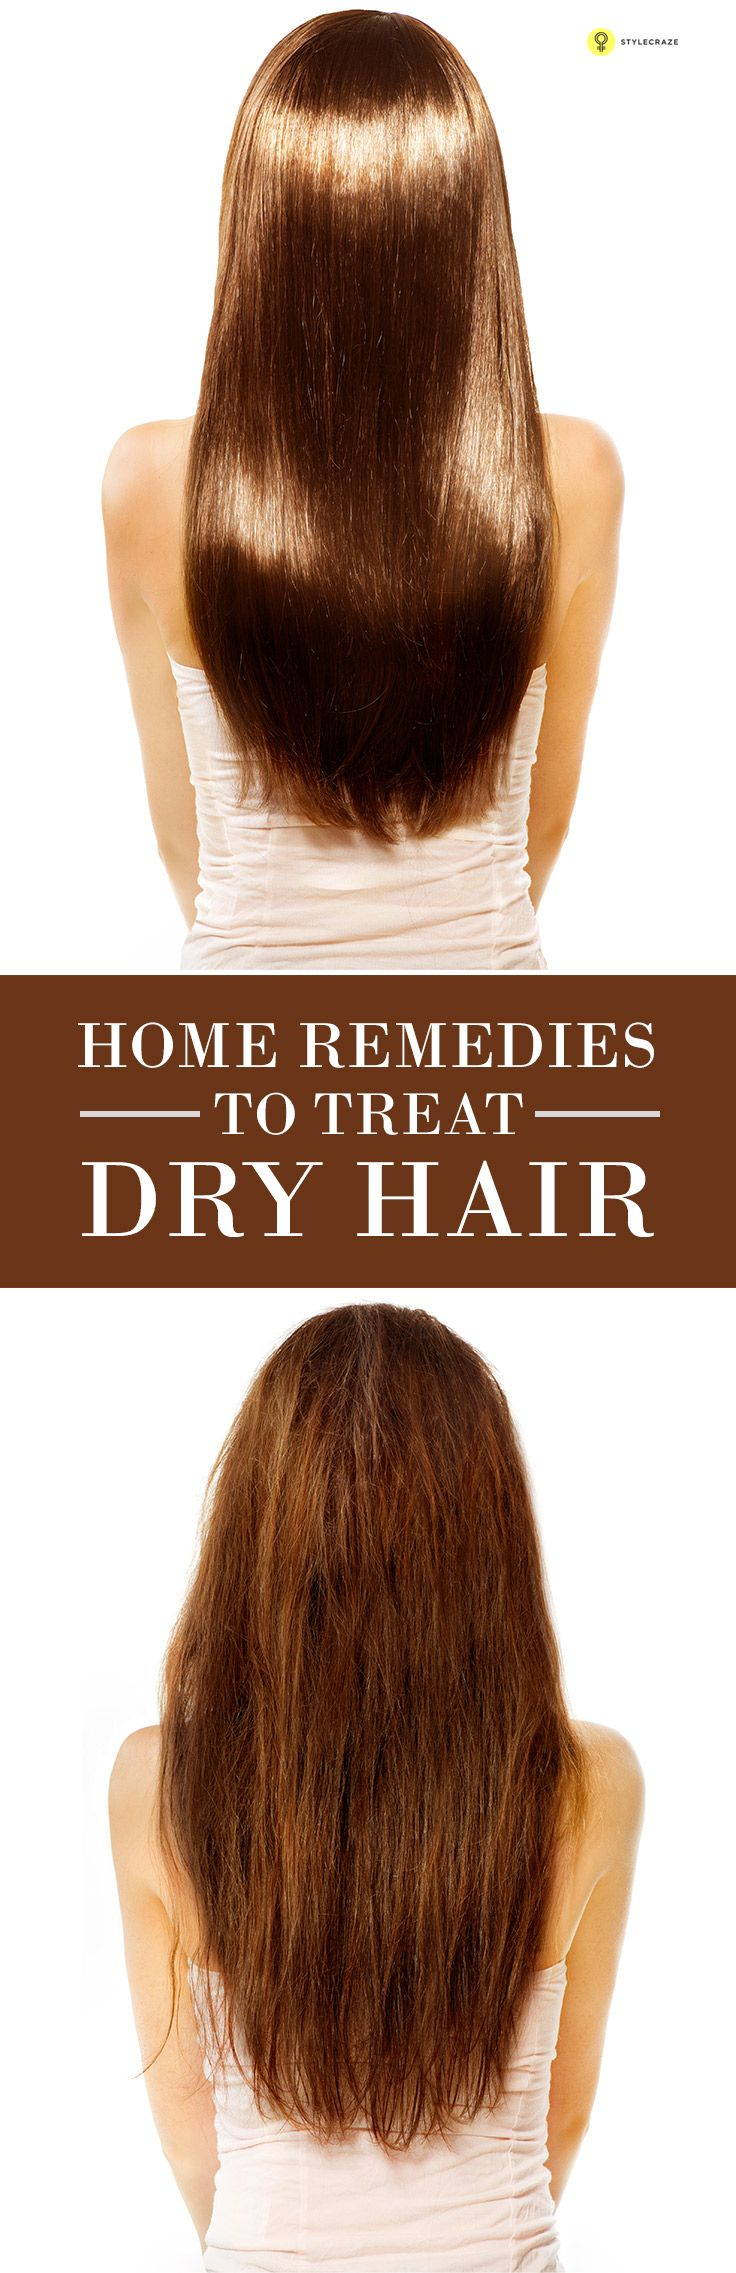 We all love to flaunt healthy and shiny tresses, right? Having dry hair messes with this dream! Dry hair remedy from the kitchen is the solution you need then. Pick anyone of these 8 for the perfect results.